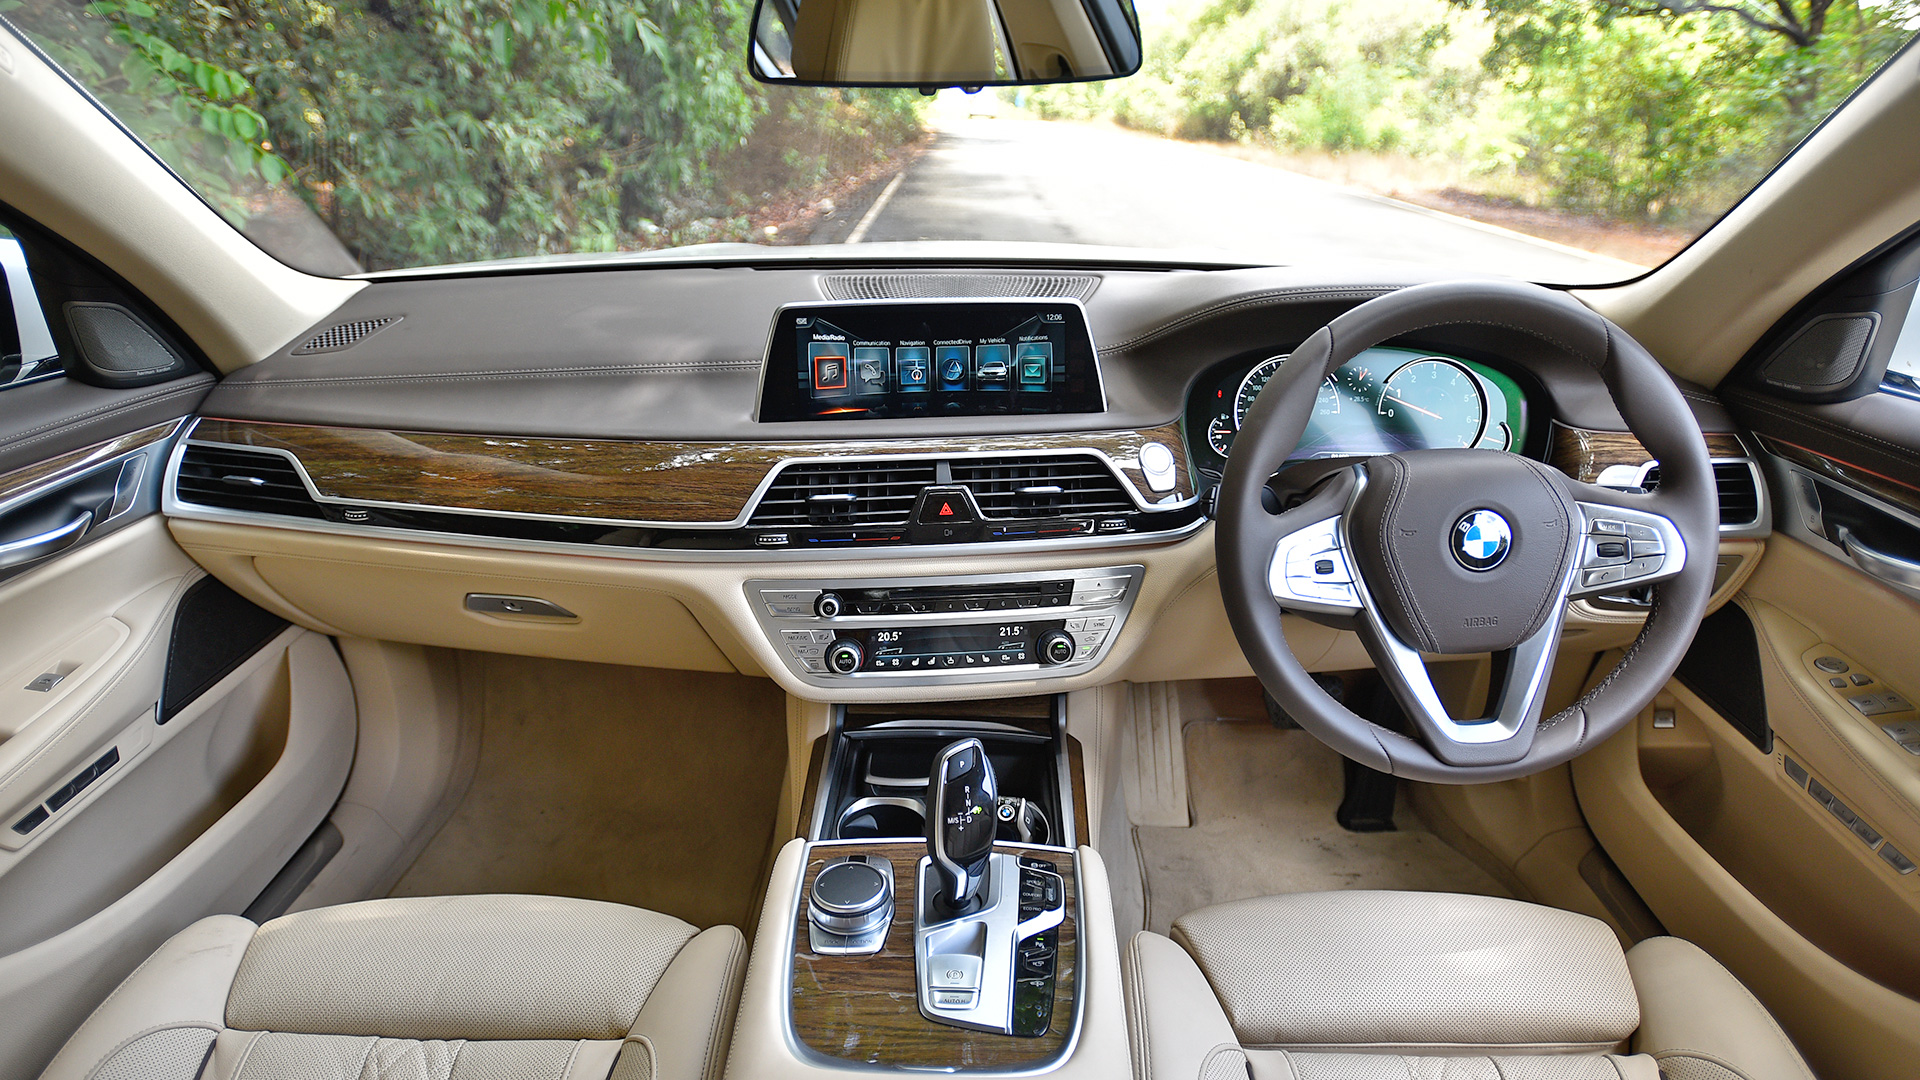 BMW 7 Series 2017 740Li DPE Signature Interior